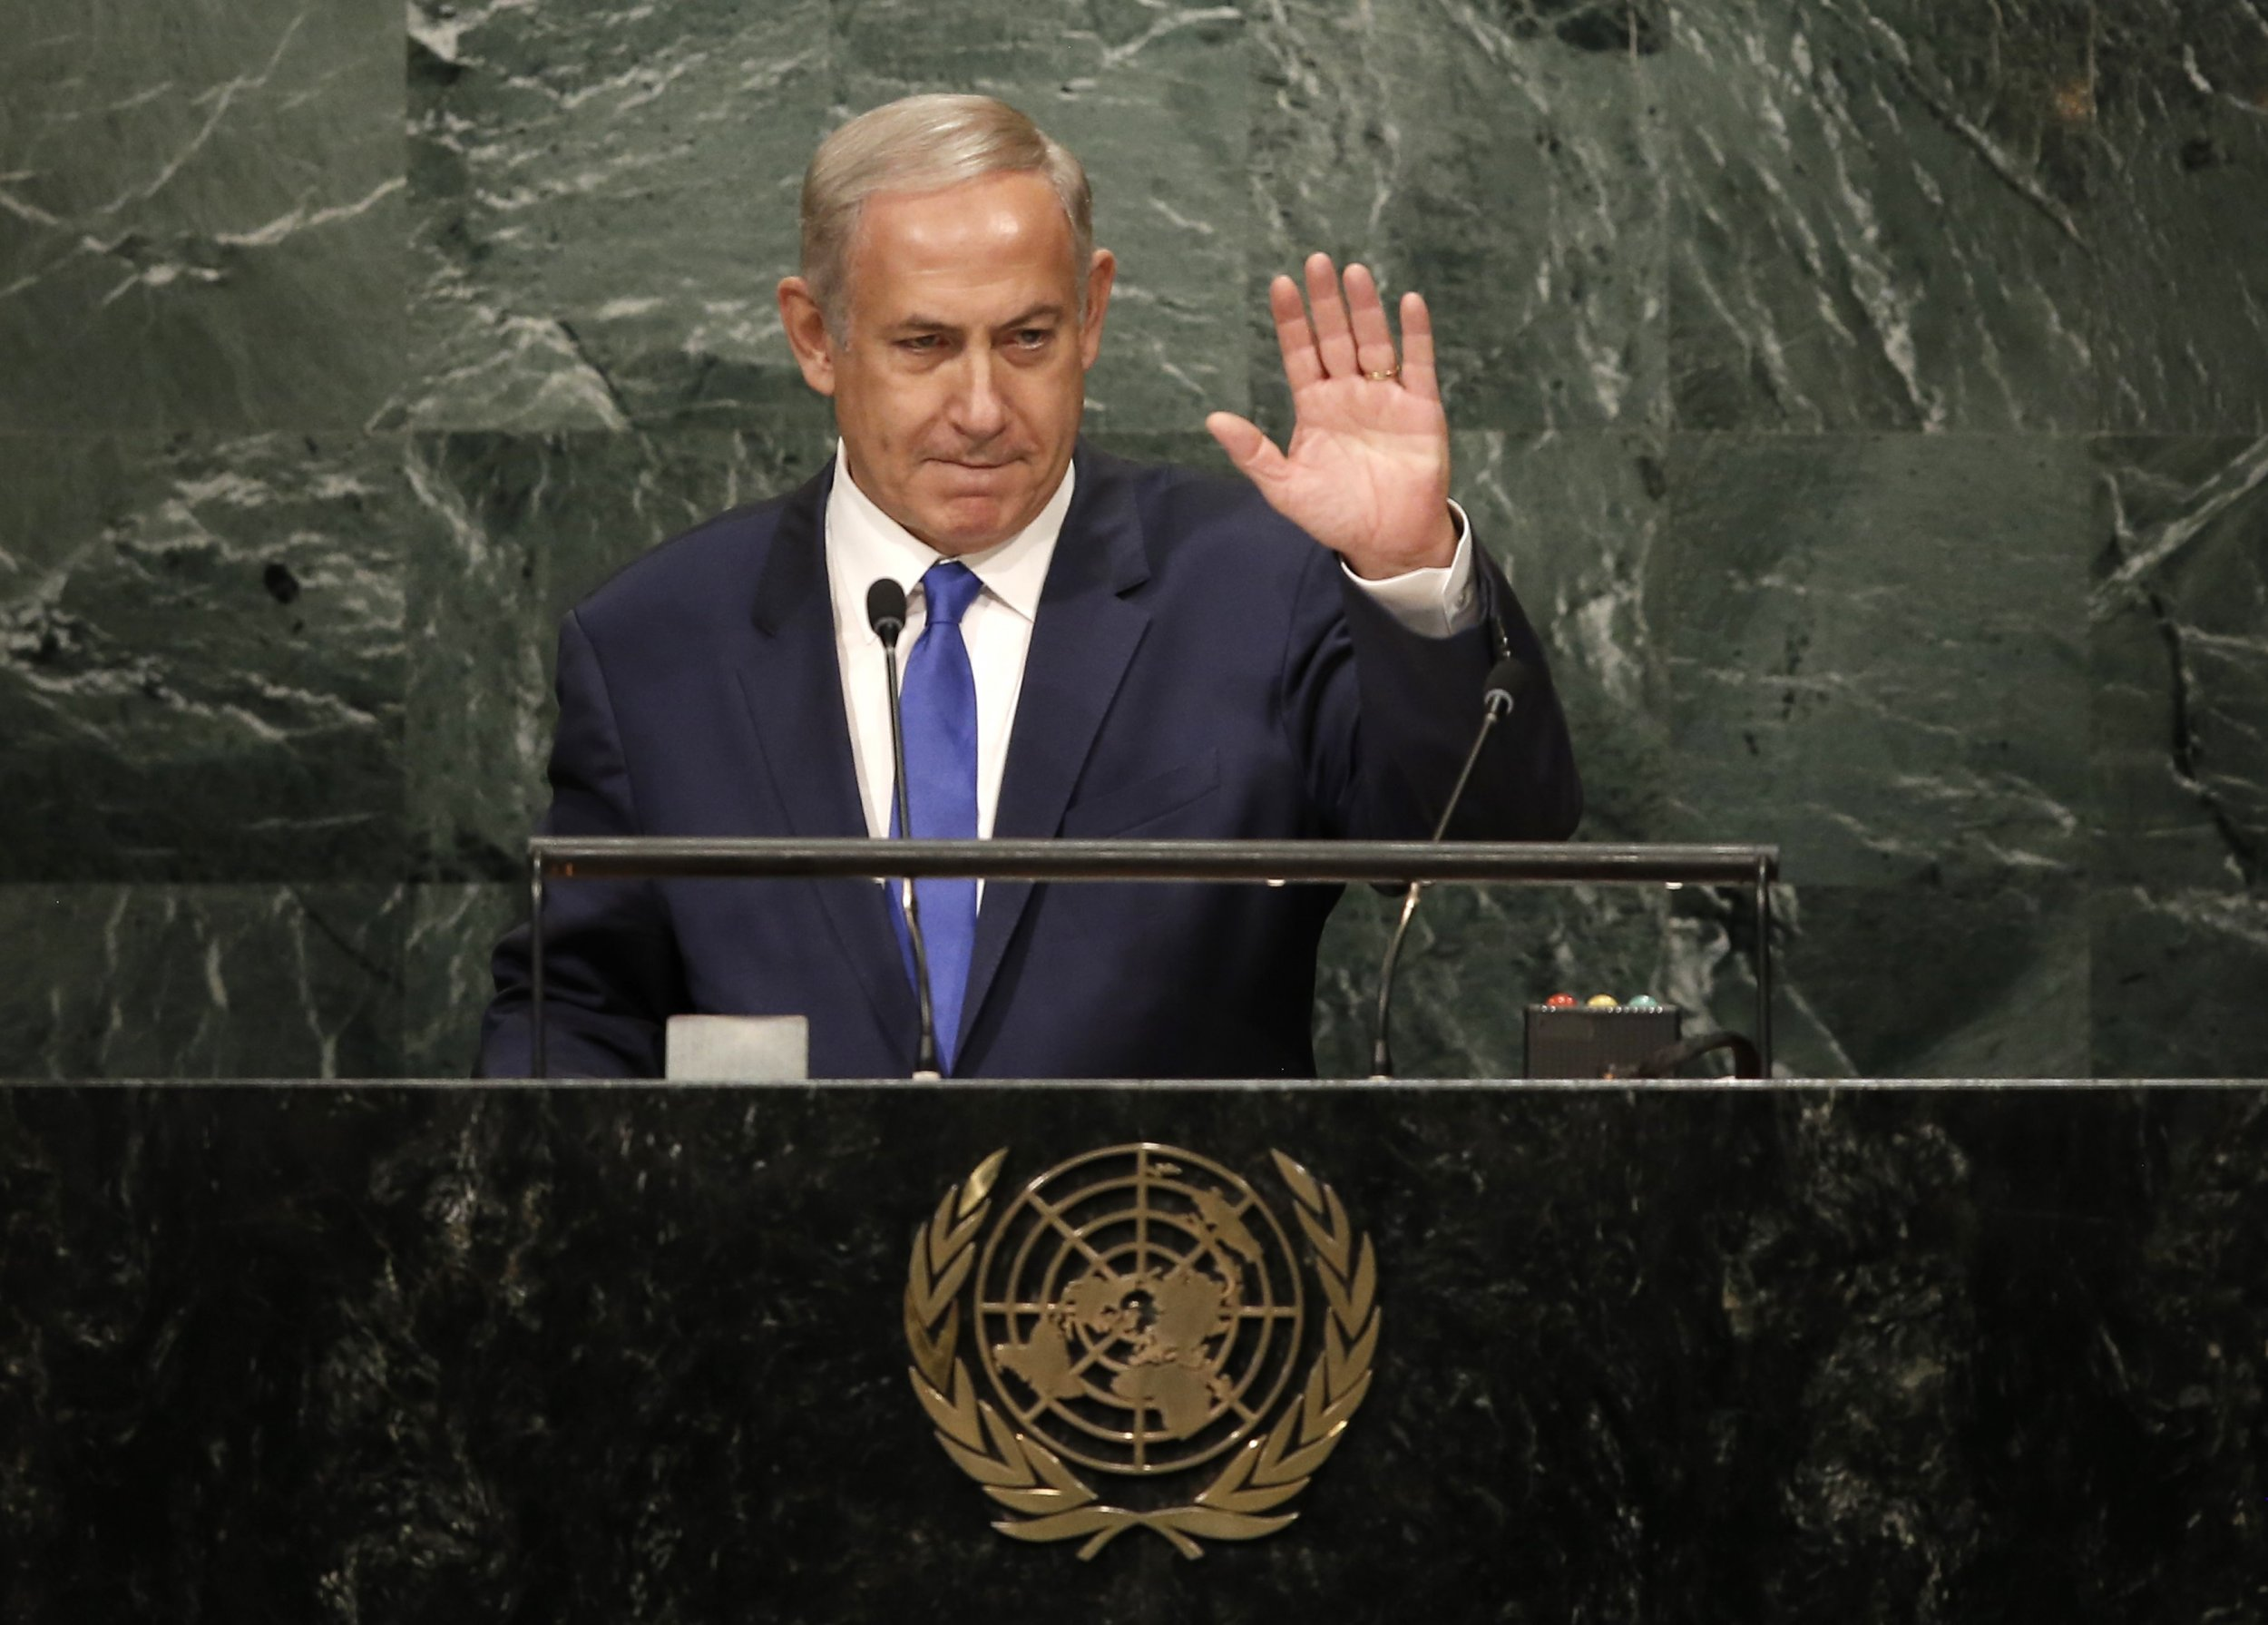 Netanyahu at the U.N.